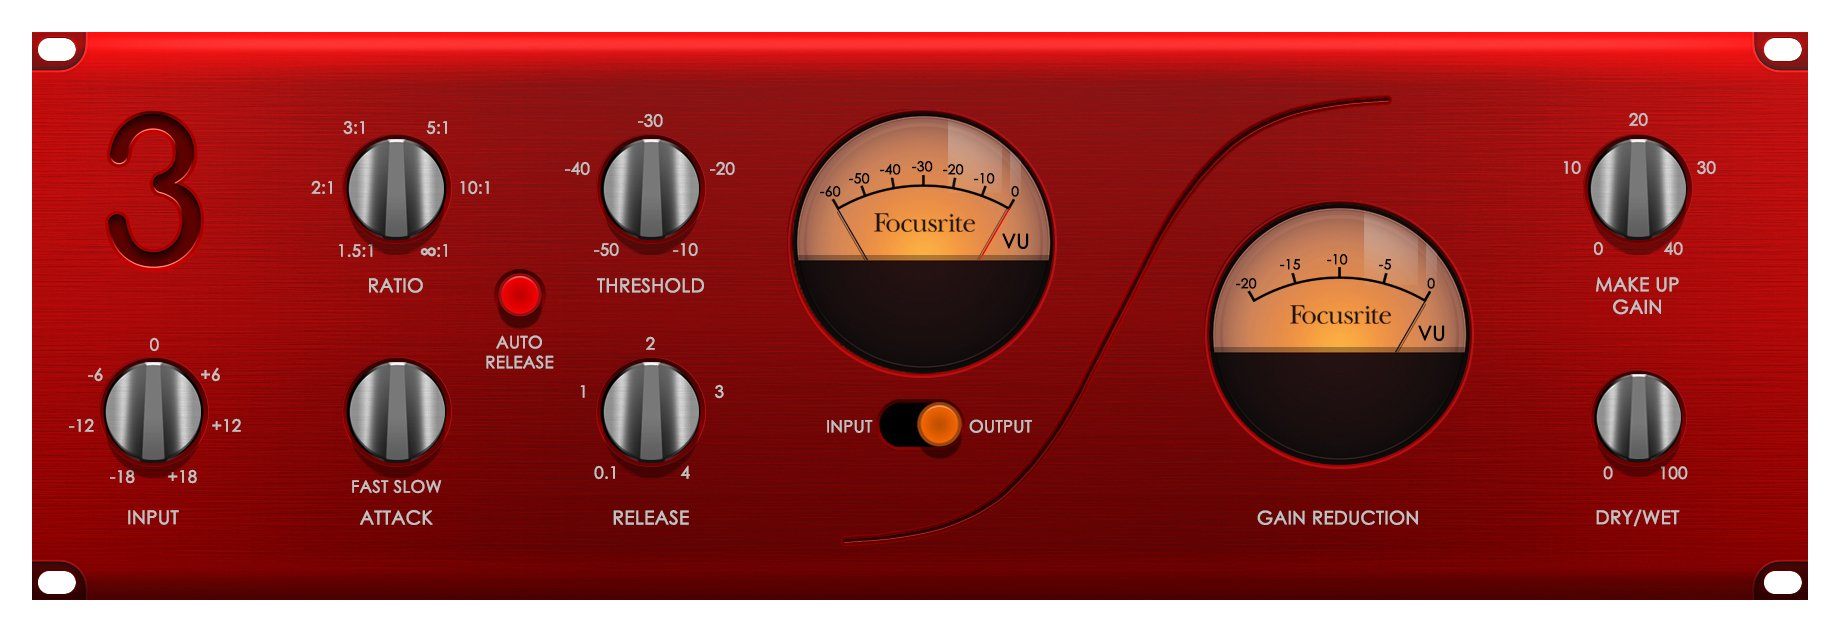 Focusrite Saffire Pro 14 8 In / 6 Out FireWire Audio Interface with 2 Focusrite Mic Preamps